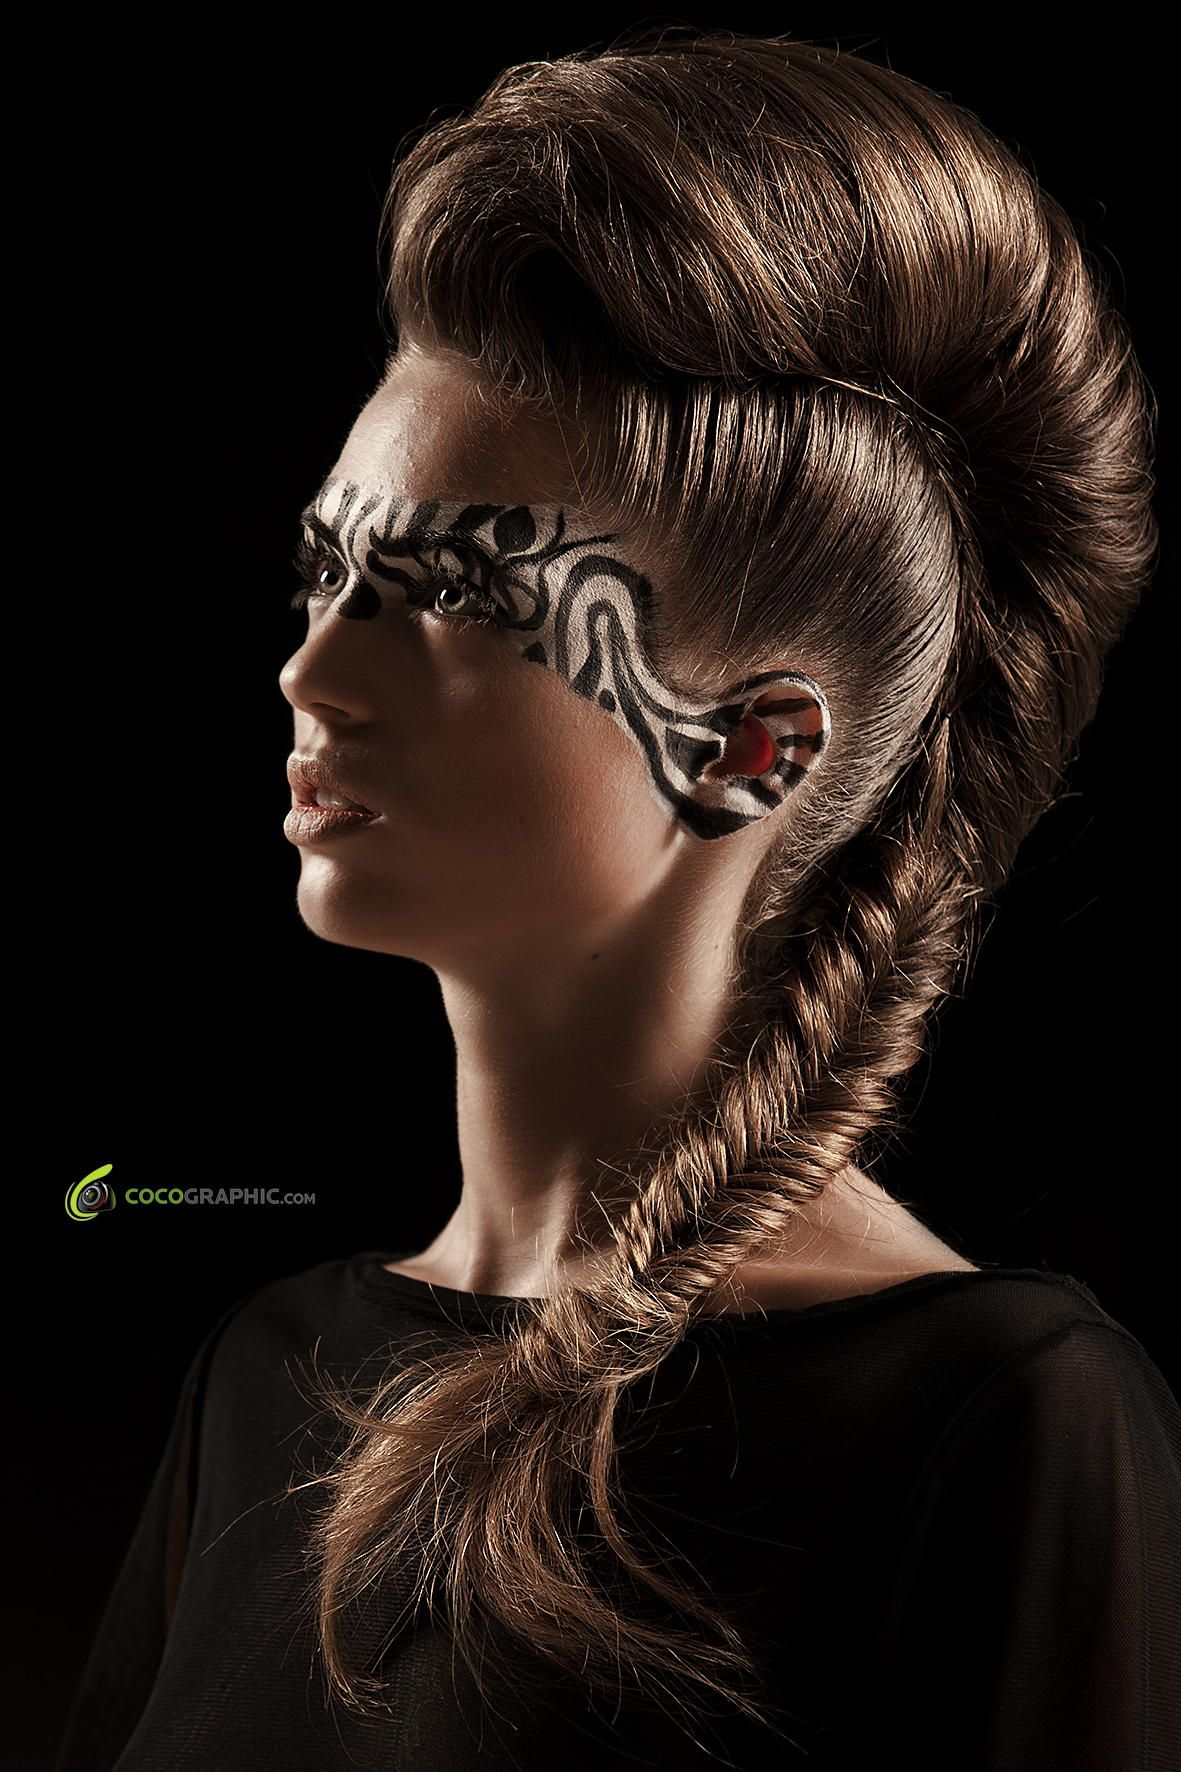 Zebra Schminken Excentric Hairstyle And Makeup Make Up